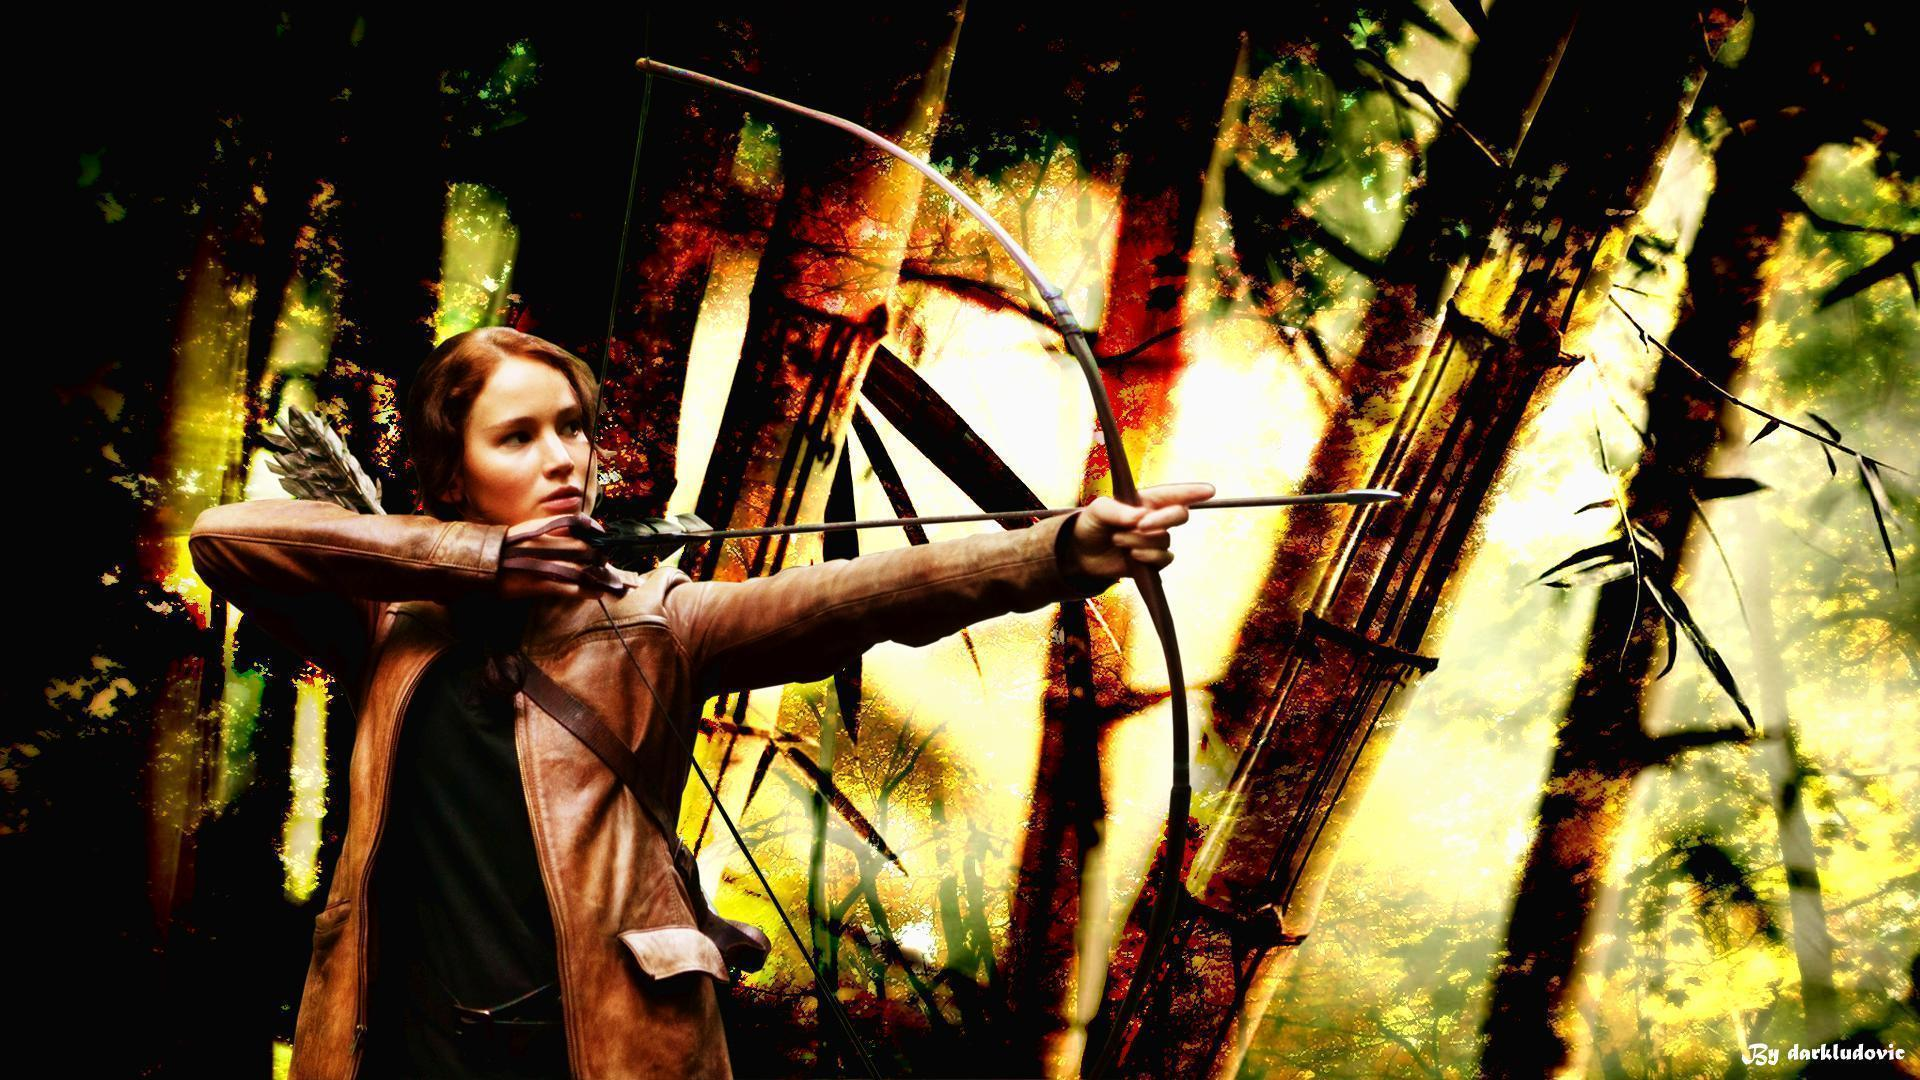 Jennifer Lawrence Hunger Games Widescreen Desktop Wallpapers